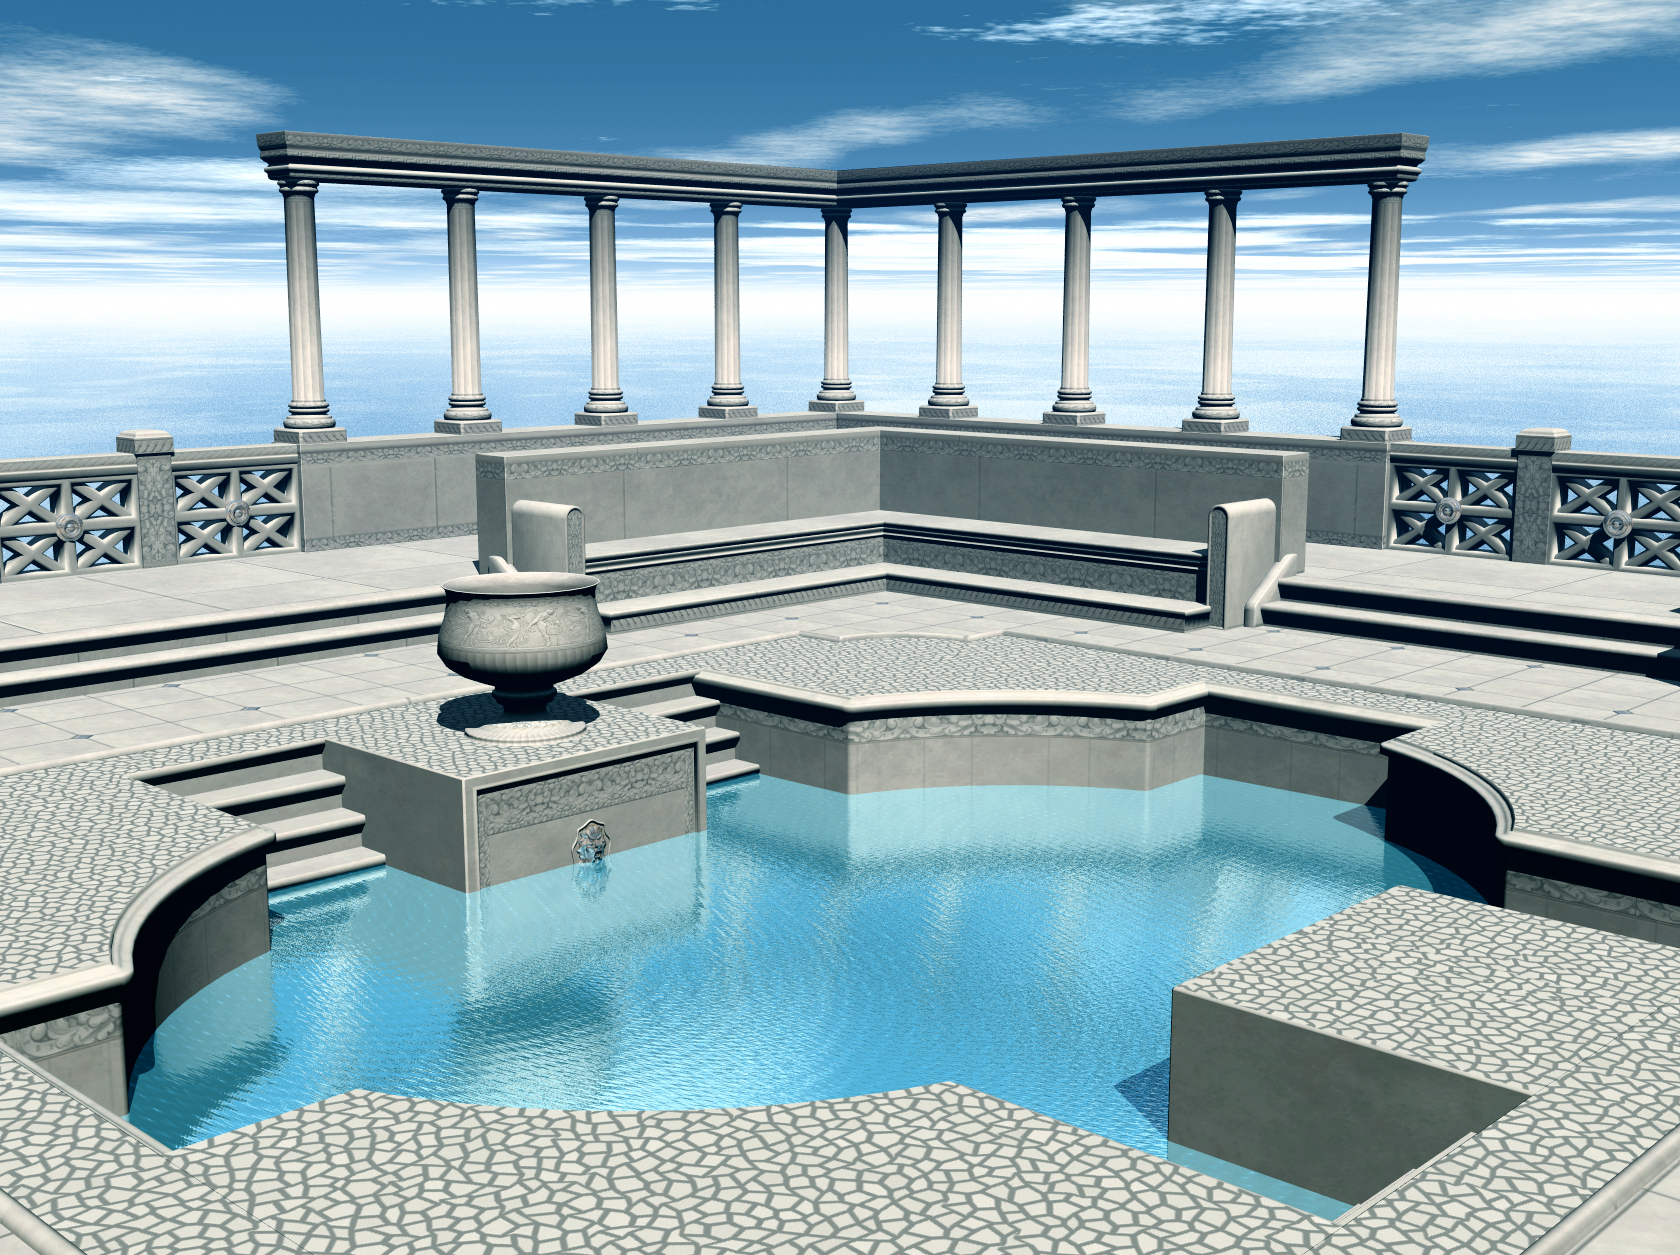 Grecian Pool-Scene Stock by shd-stock